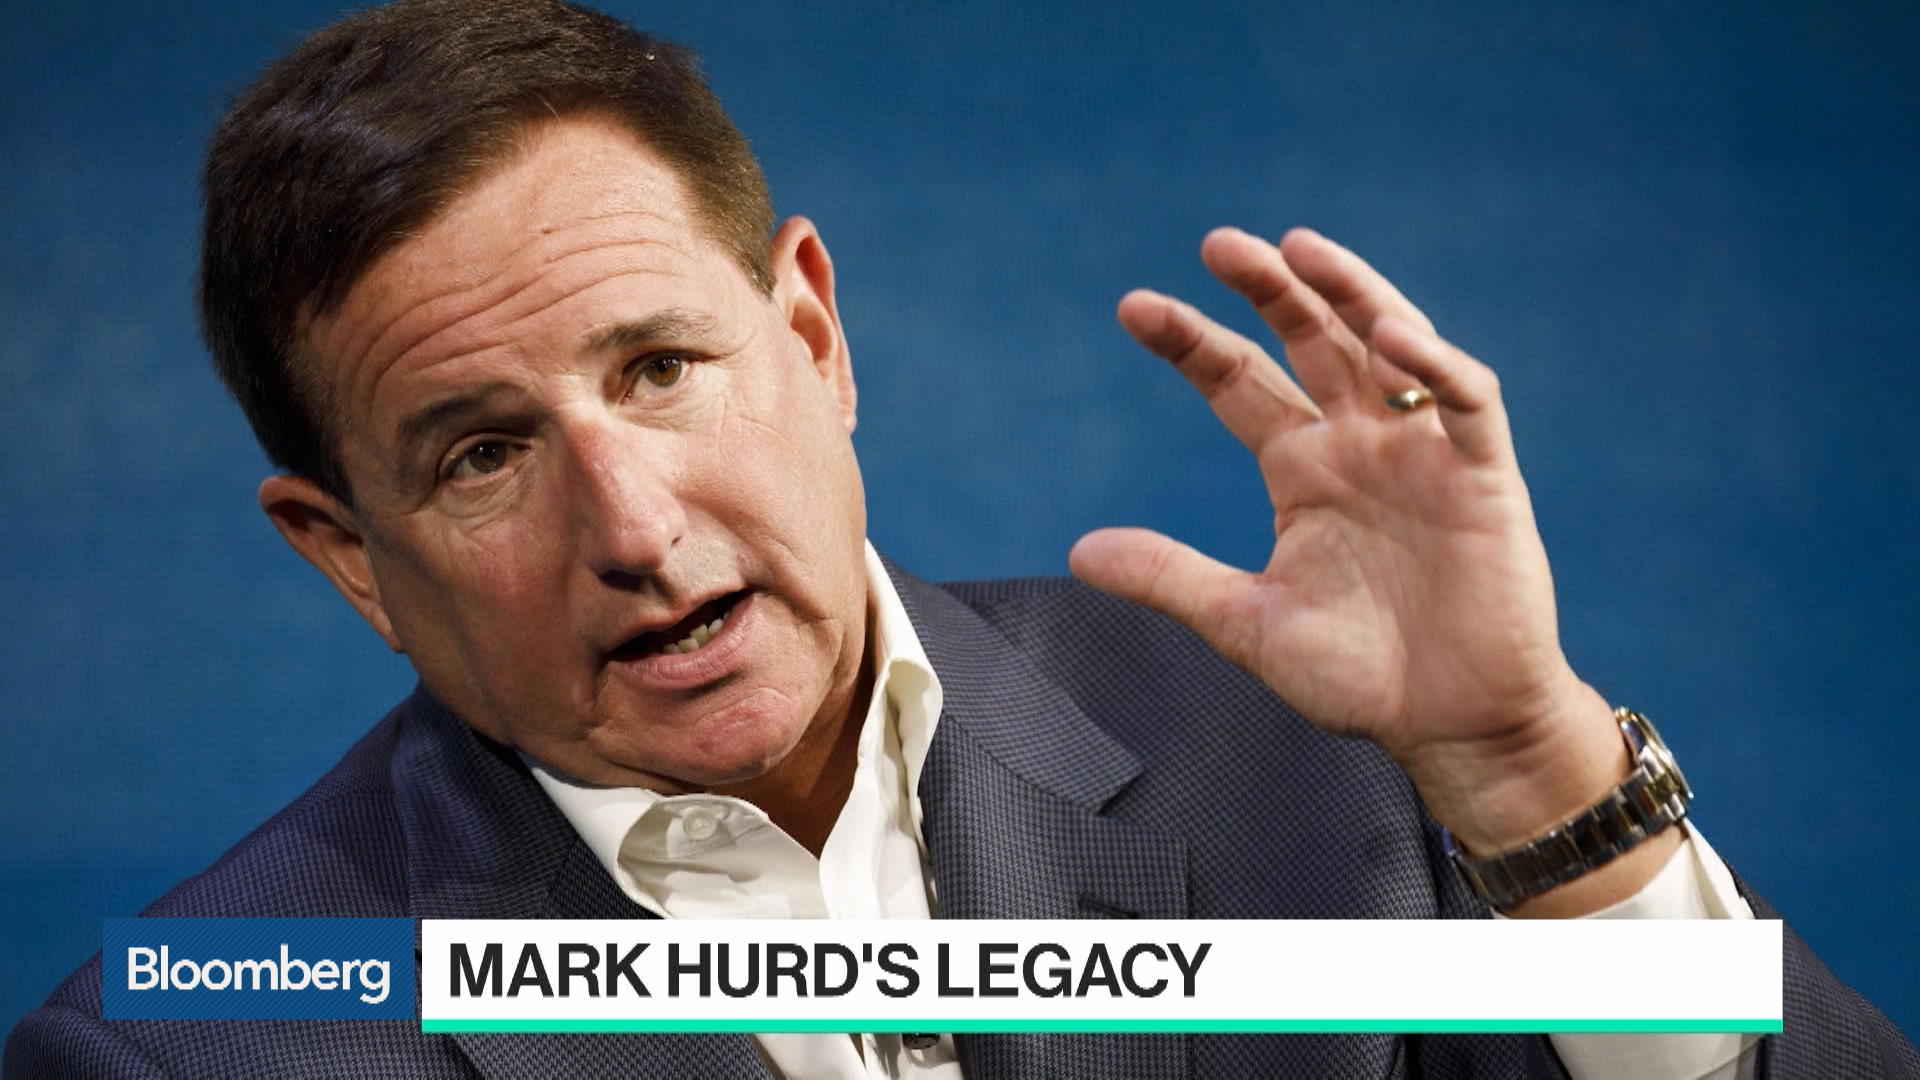 Remembering Oracle CEO Mark Hurd's Legacy